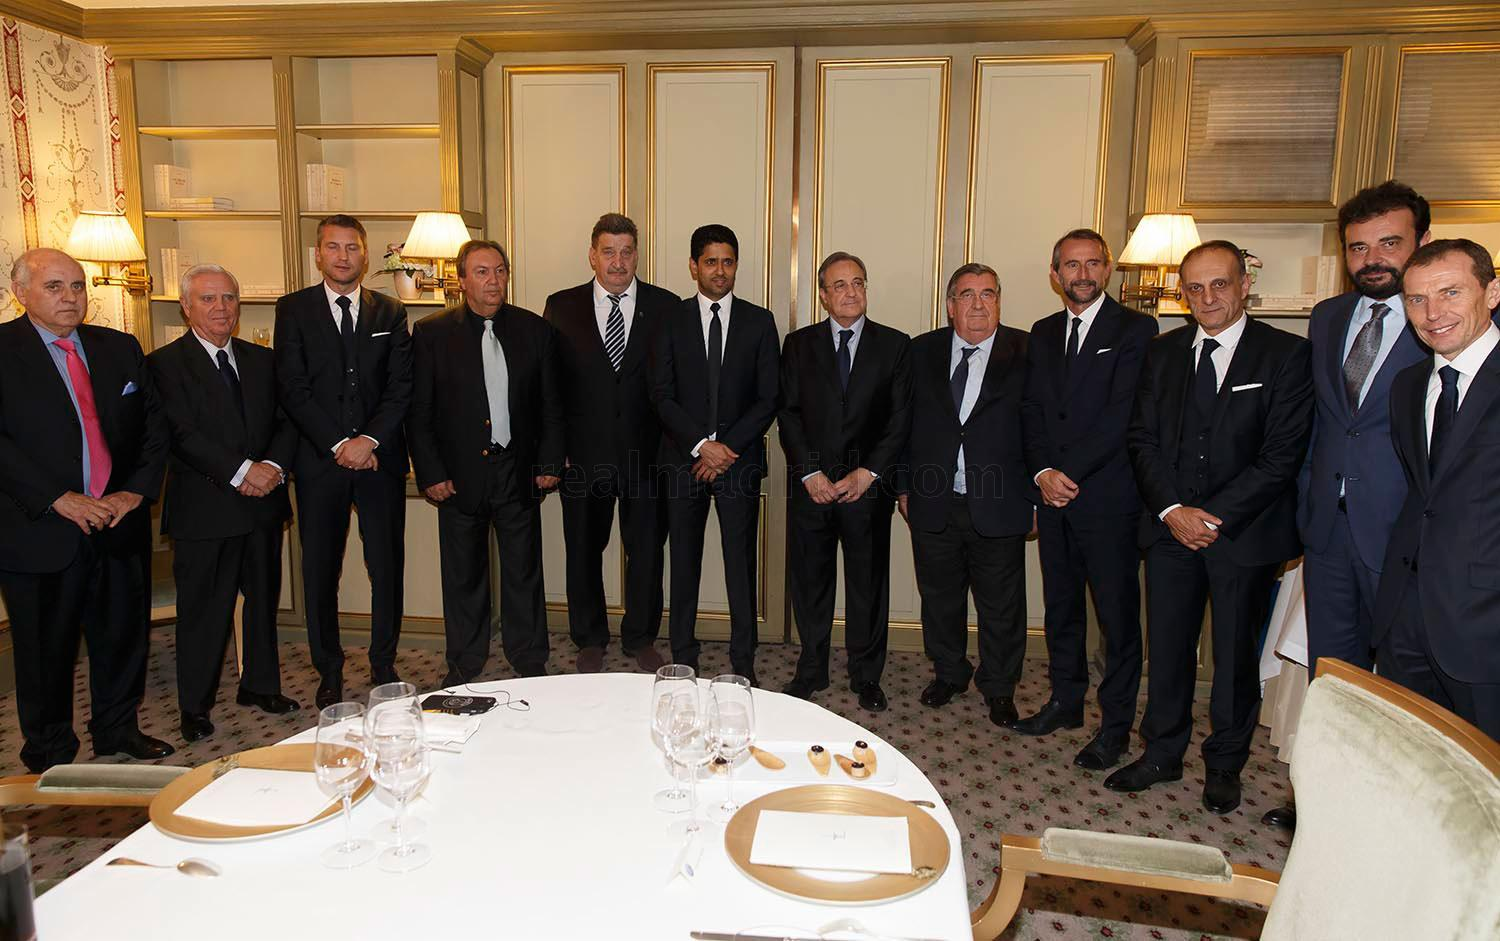 Real Madrid - Cena de directivas - 20-10-2015